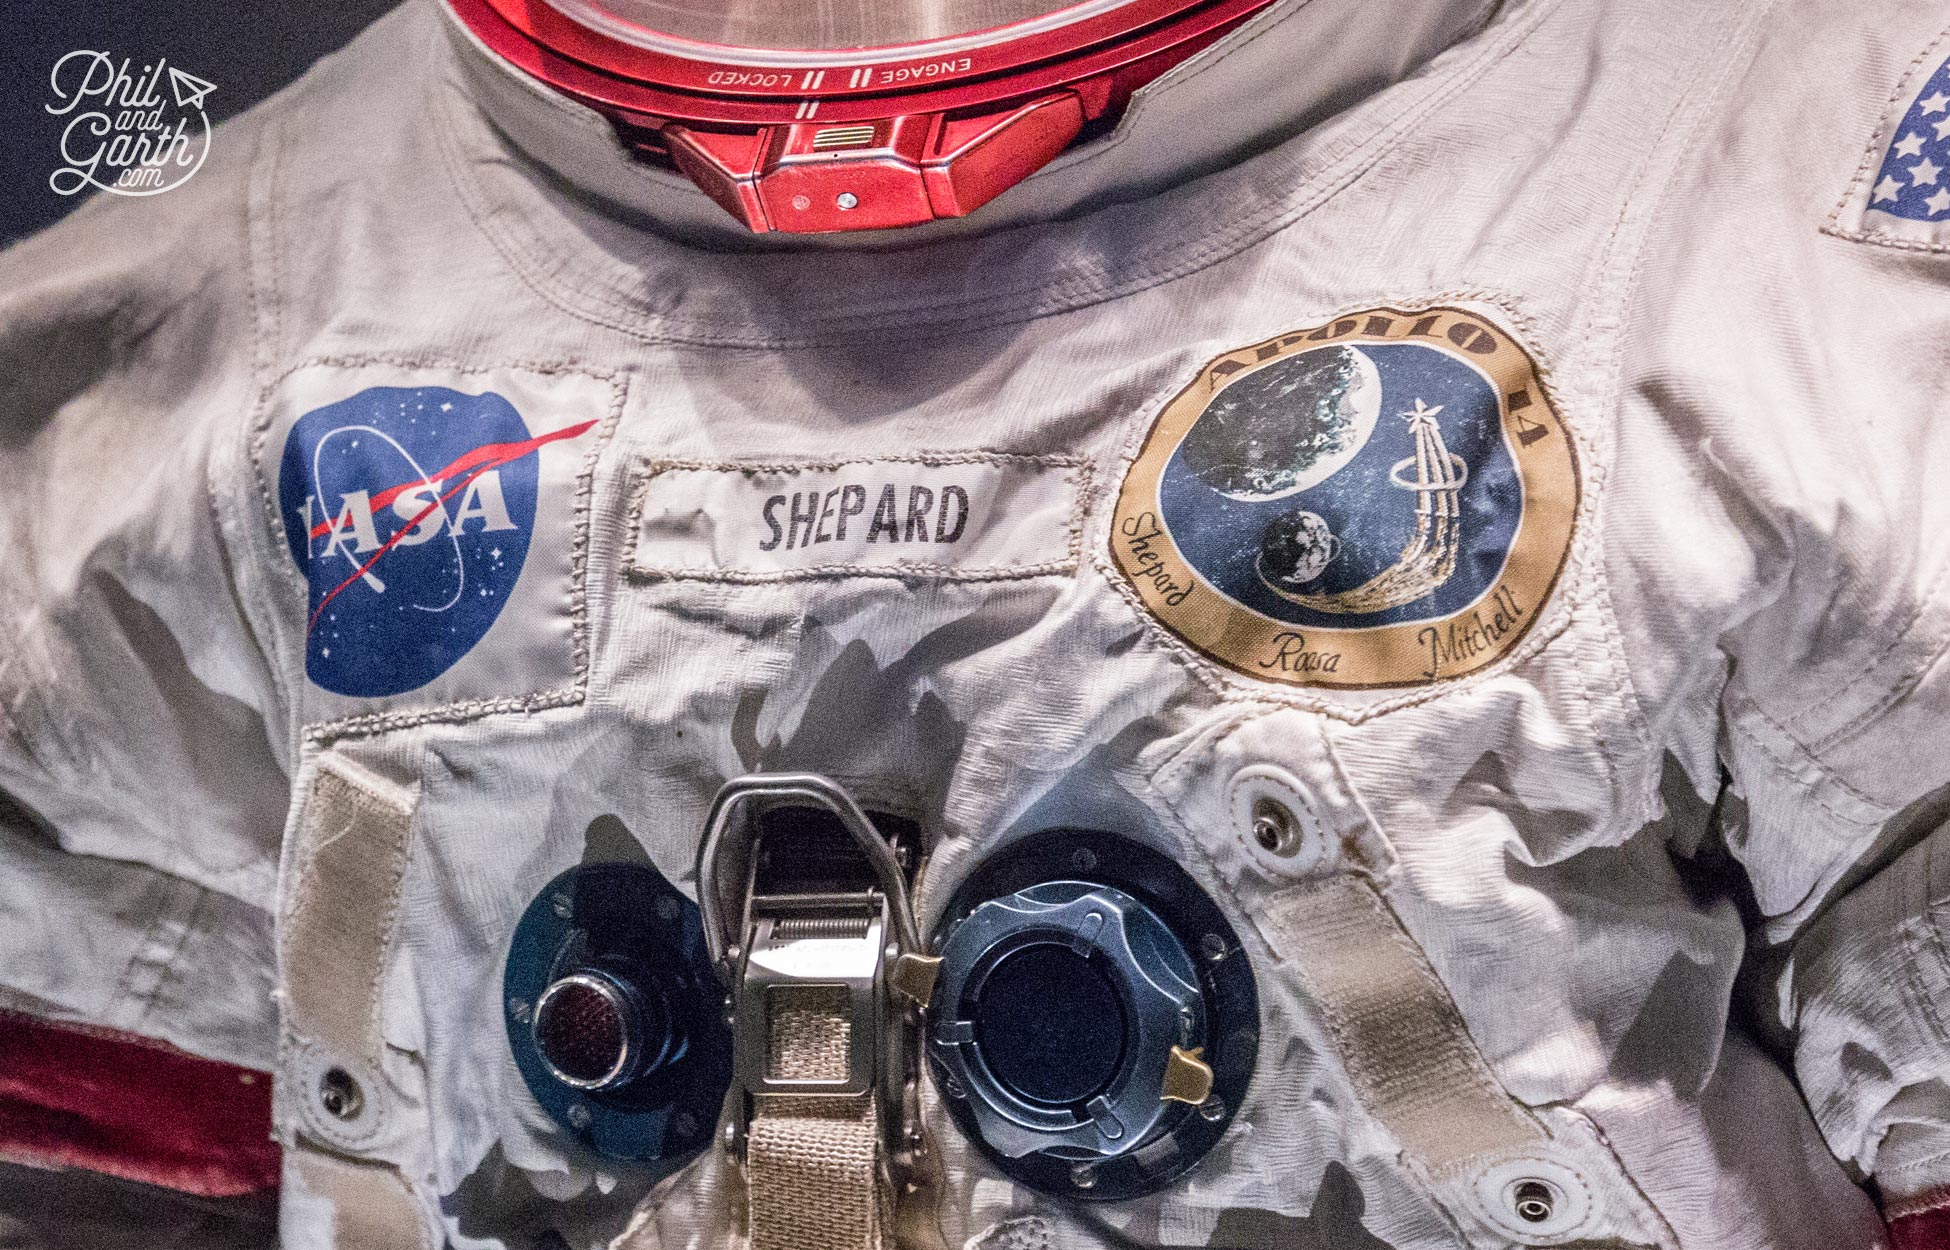 Close up of Alan Shepard's spacesuit still covered in moon dust